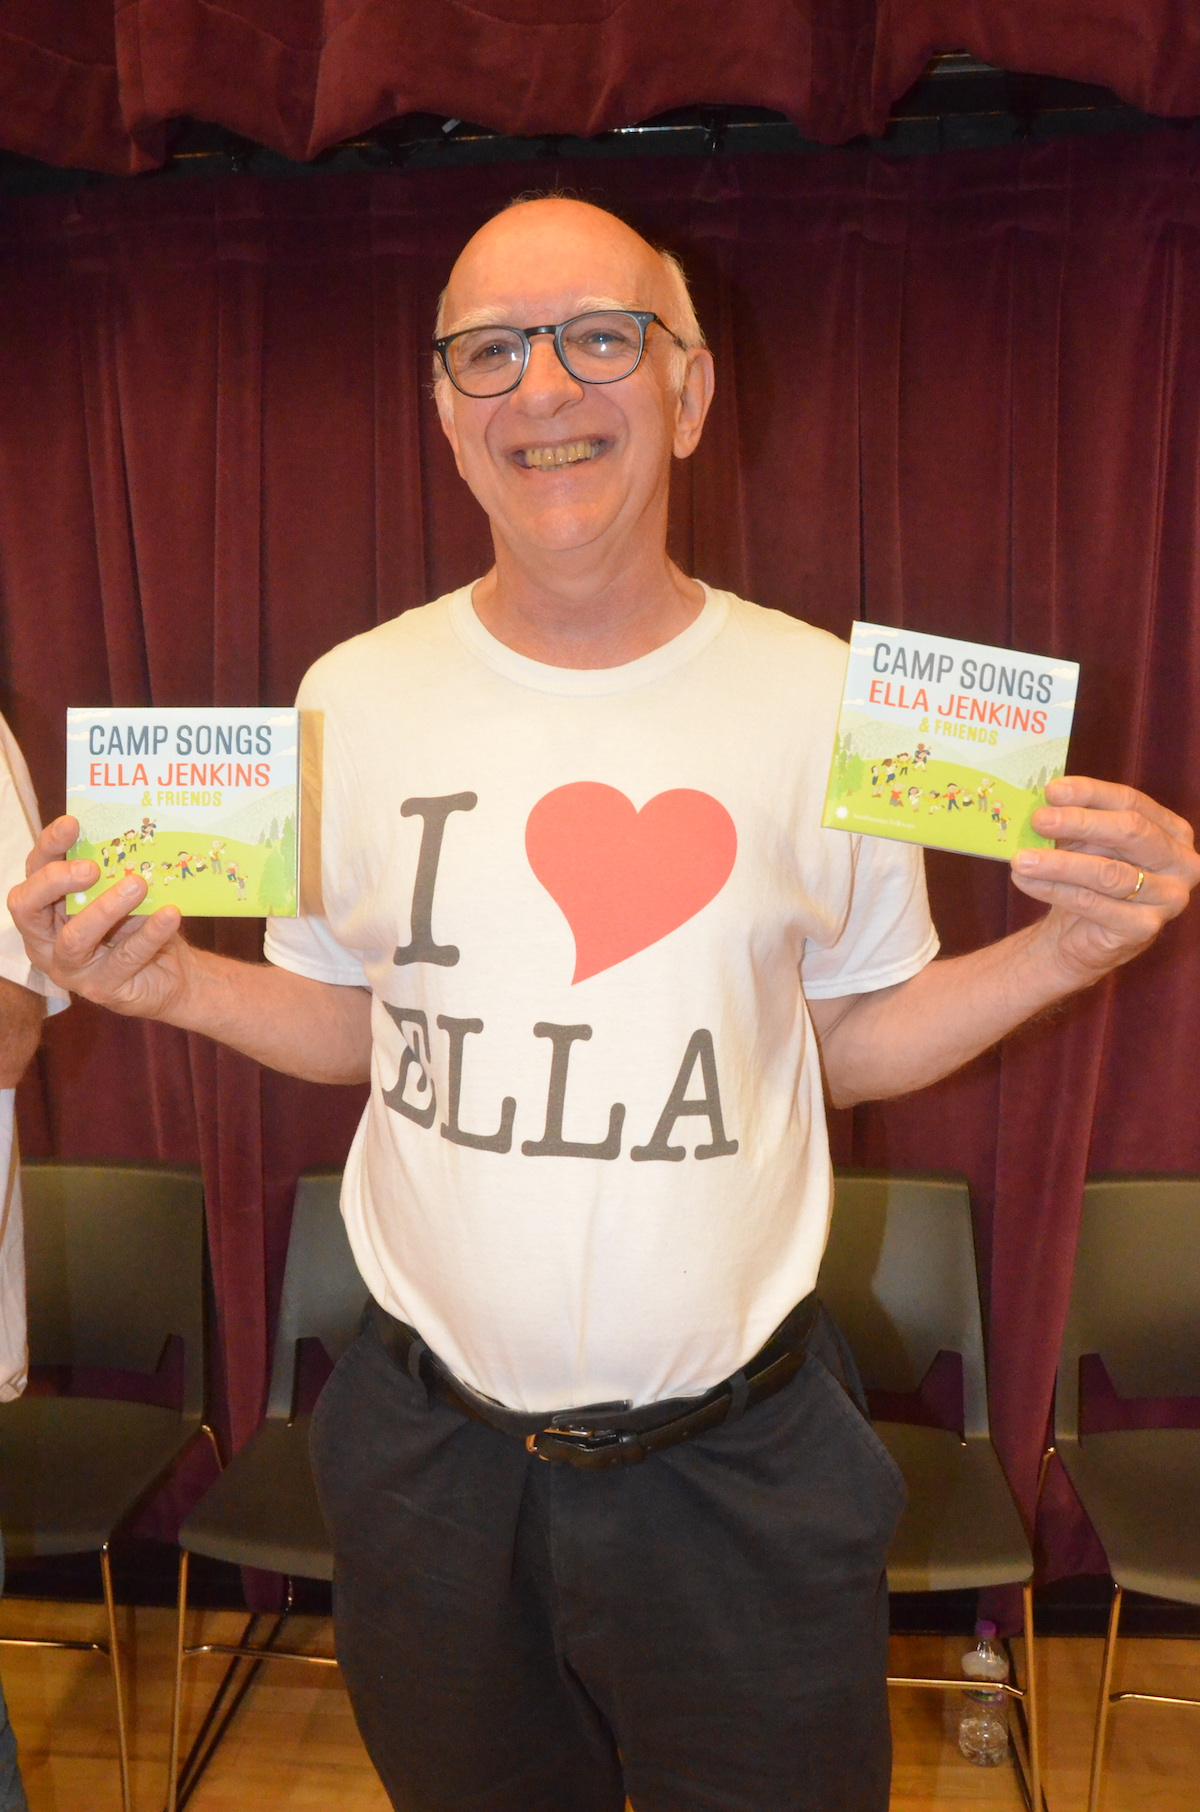 Tony Seeger holding copies of Ella Jenkins Camp Songs CDs